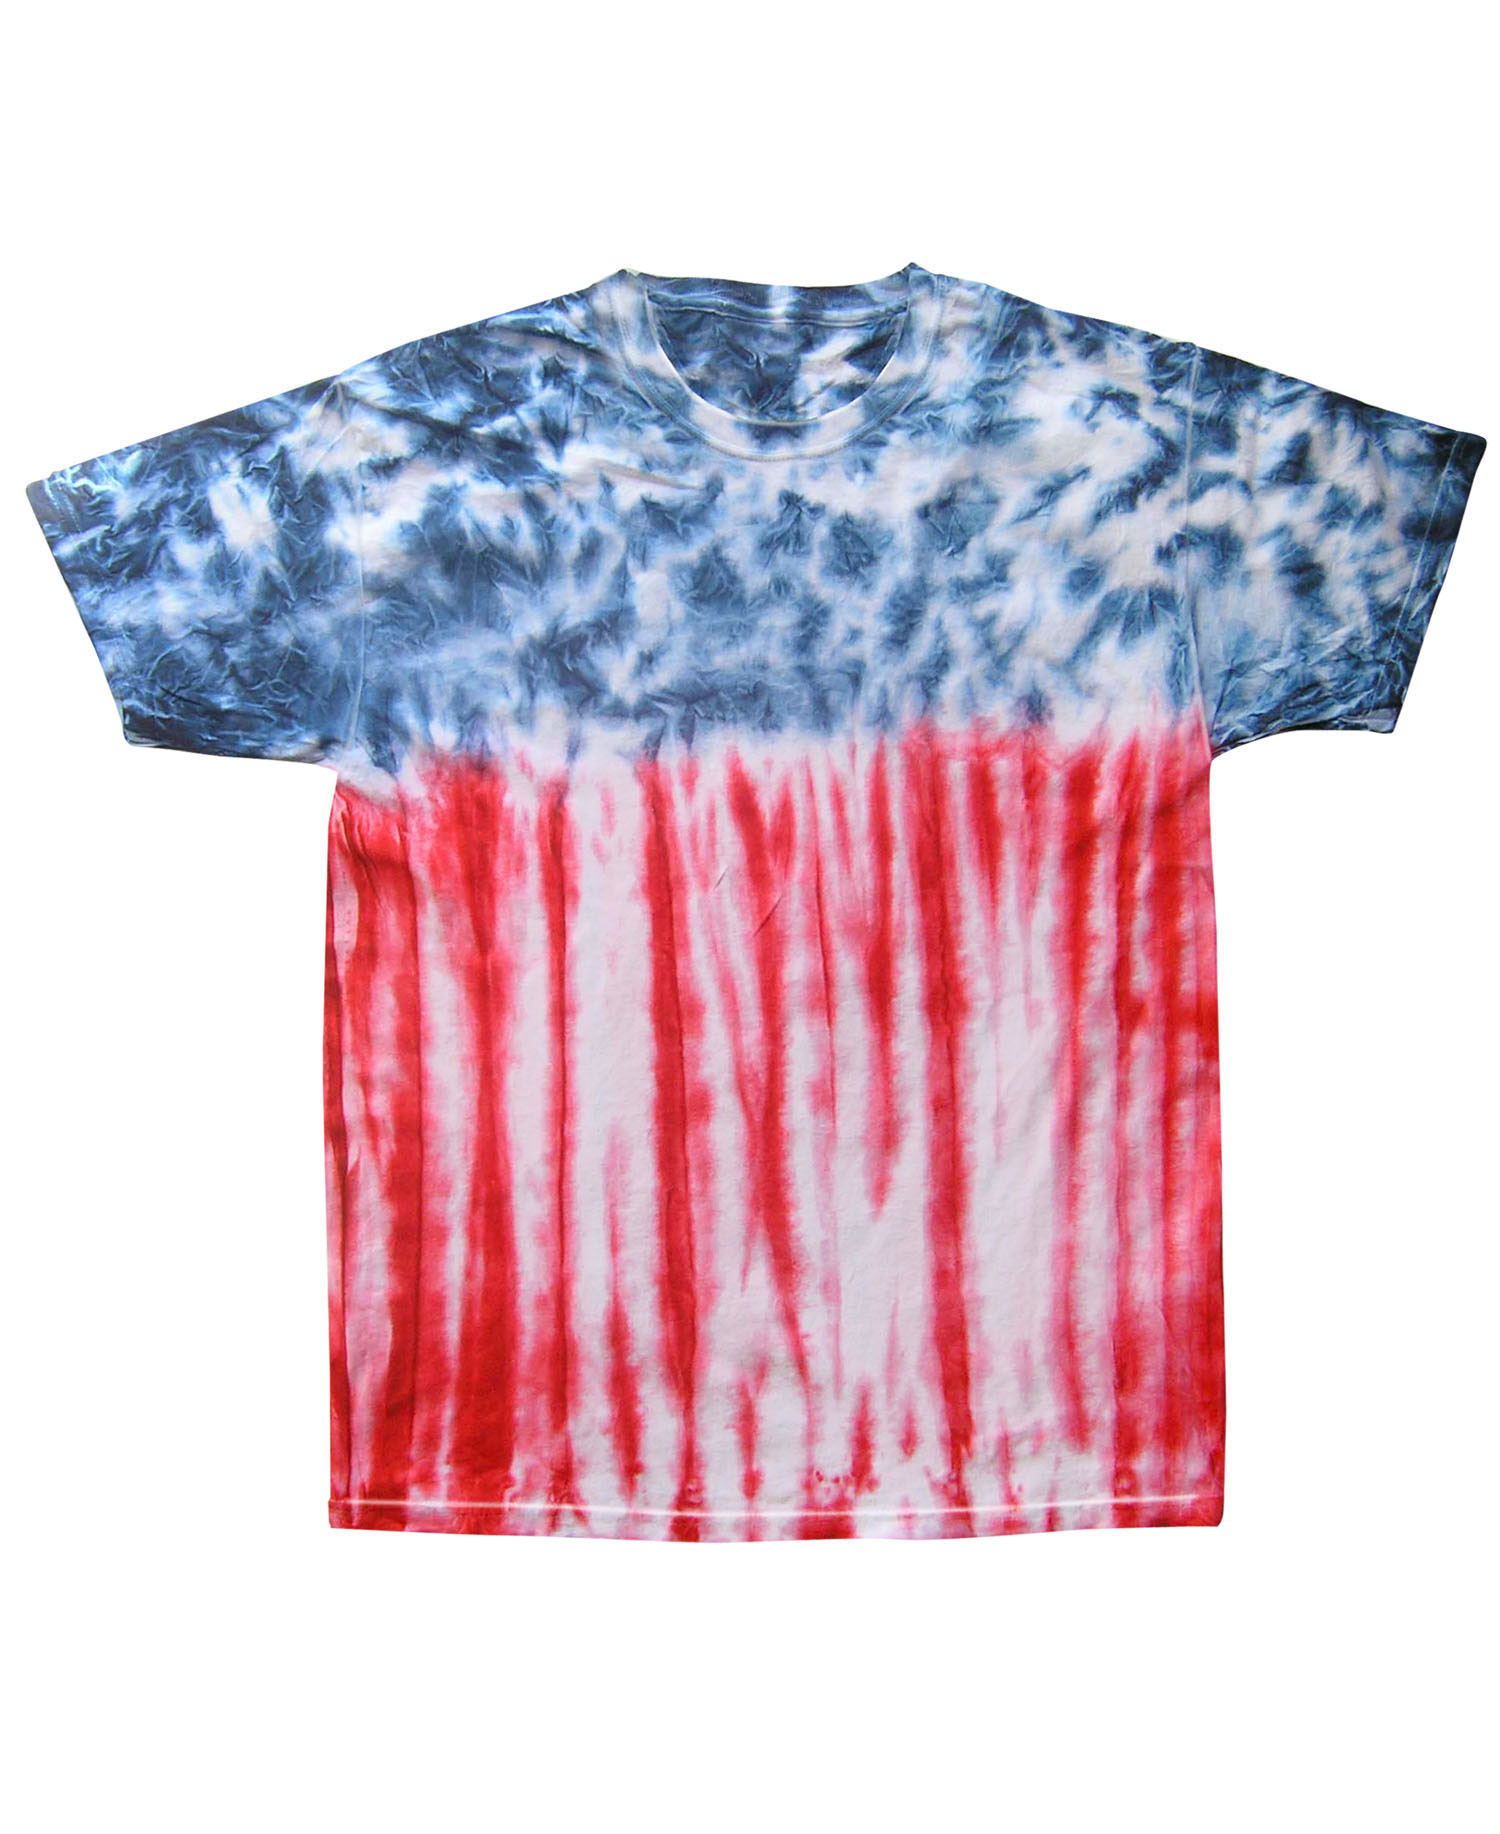 Colortone - T1001 Adult Usa Flag Tie Dye Tee